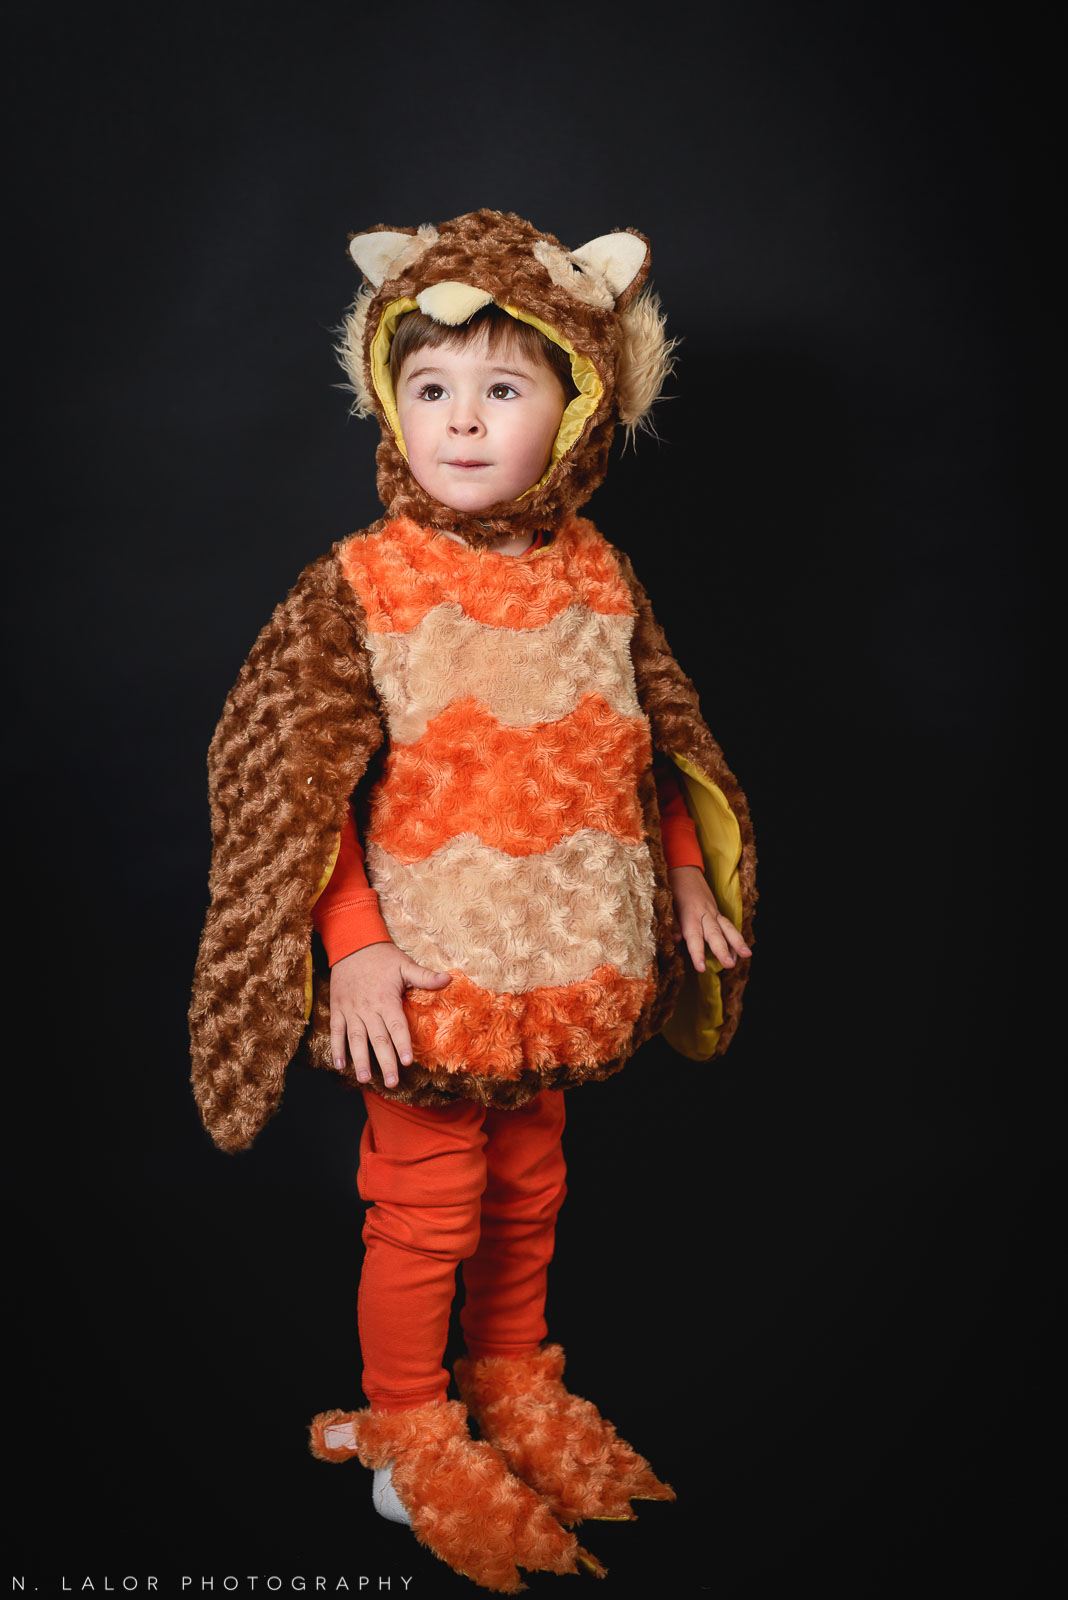 Toddler owl costume. Kids Halloween costume portrait by N. Lalor Photography in Greenwich, Connecticut.